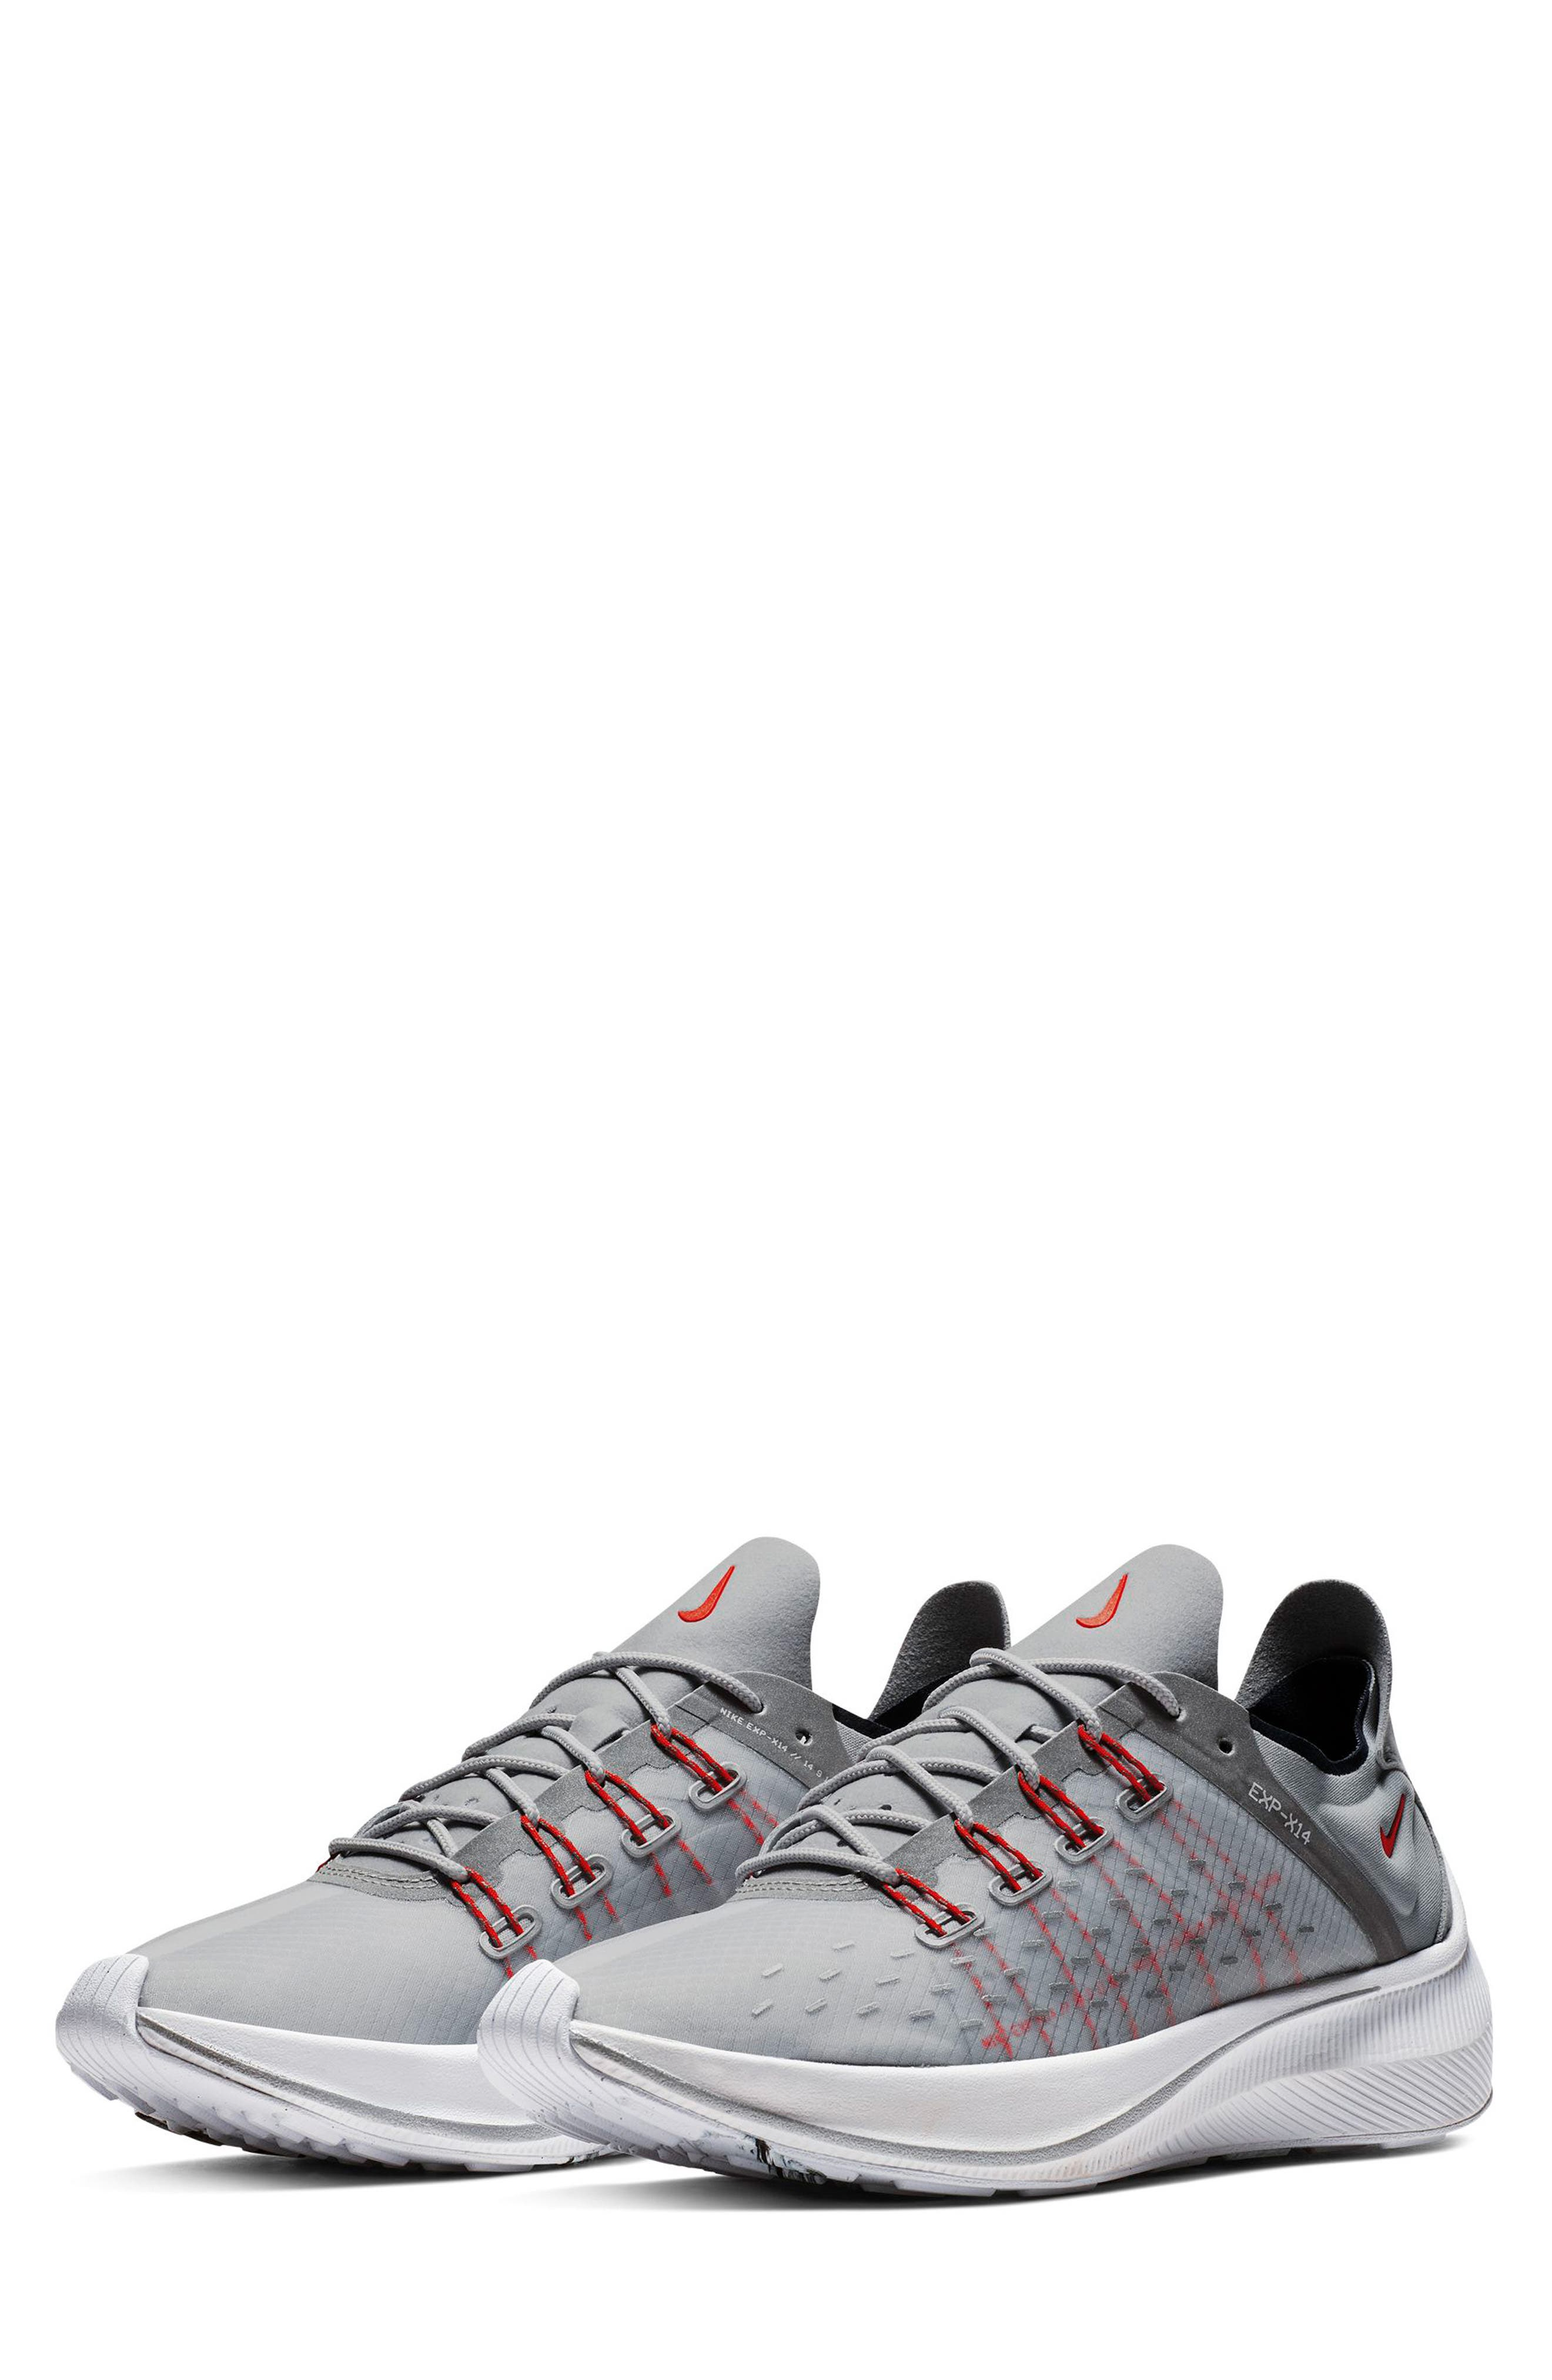 EXP-X14 HR Running Shoe, Main, color, SILVER/ CRIMSON/ OBSIDIAN